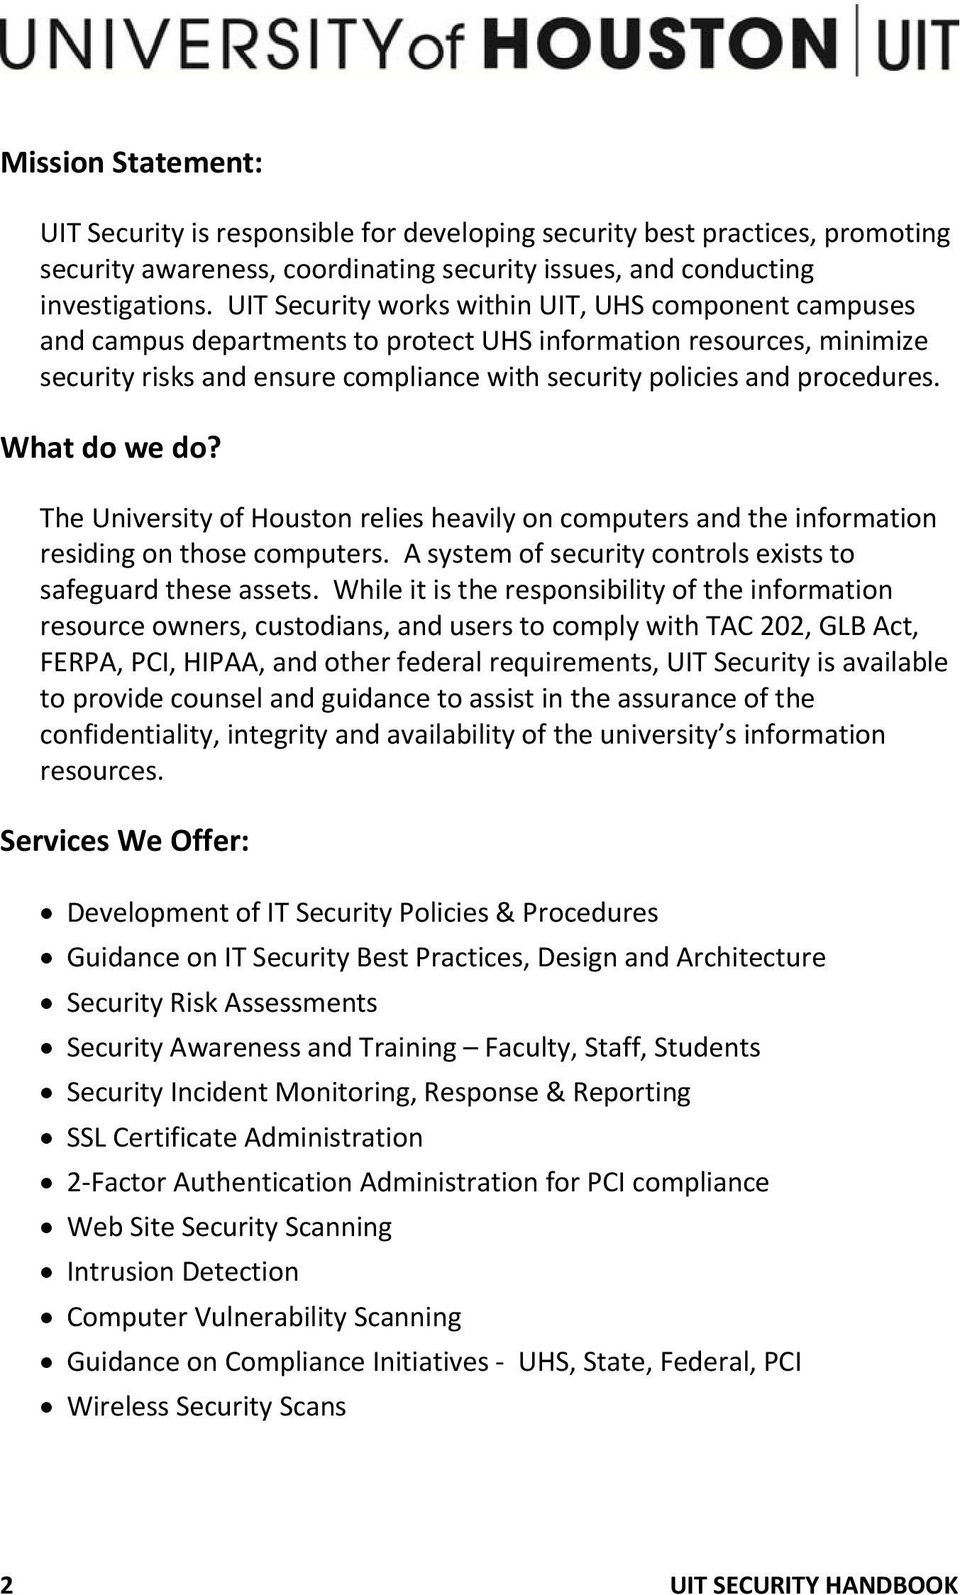 What do we do? The University of Houston relies heavily on computers and the information residing on those computers. A system of security controls exists to safeguard these assets.